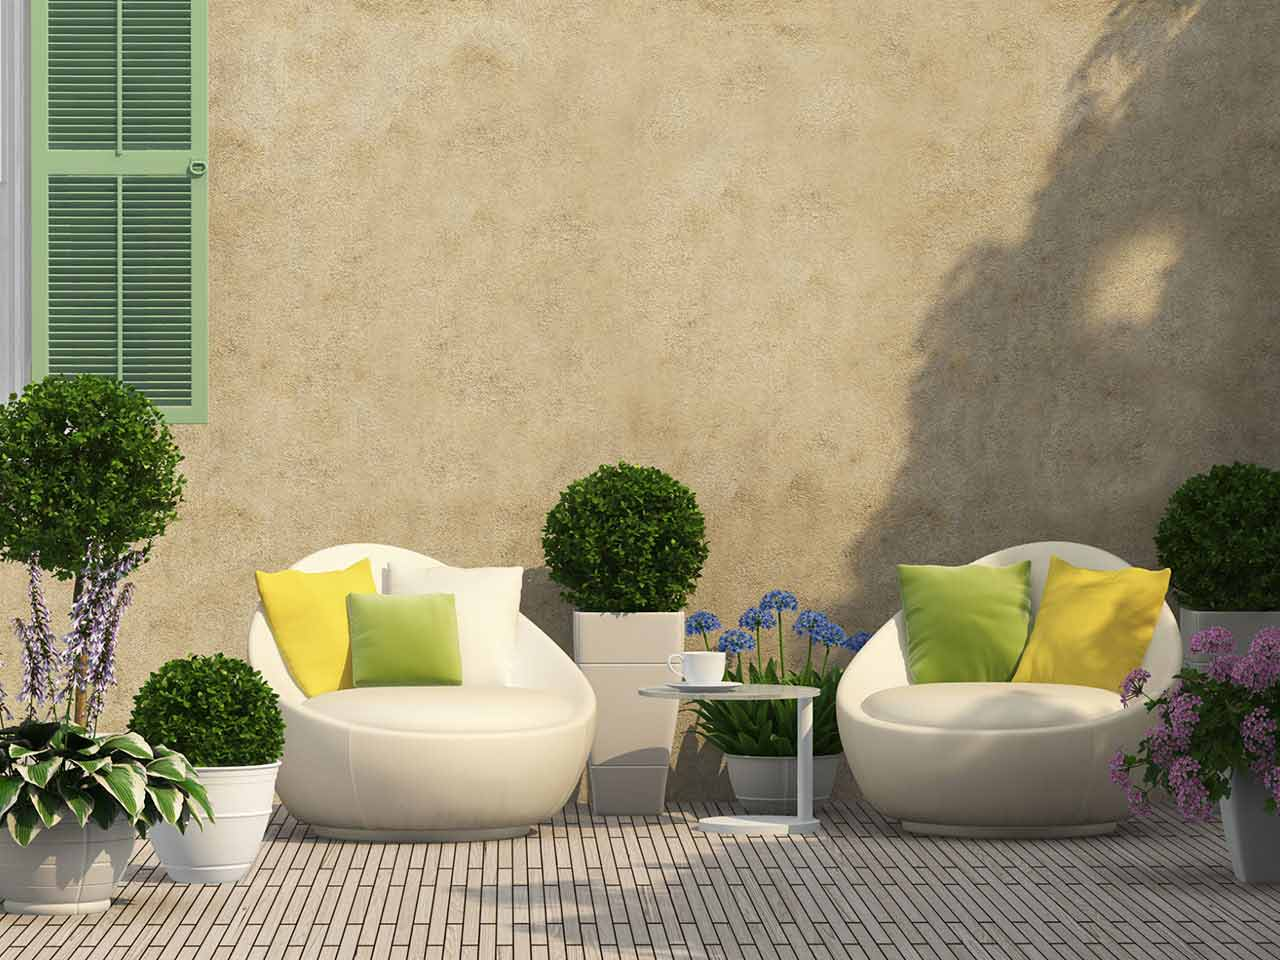 Courtyard garden with furniture and topiary